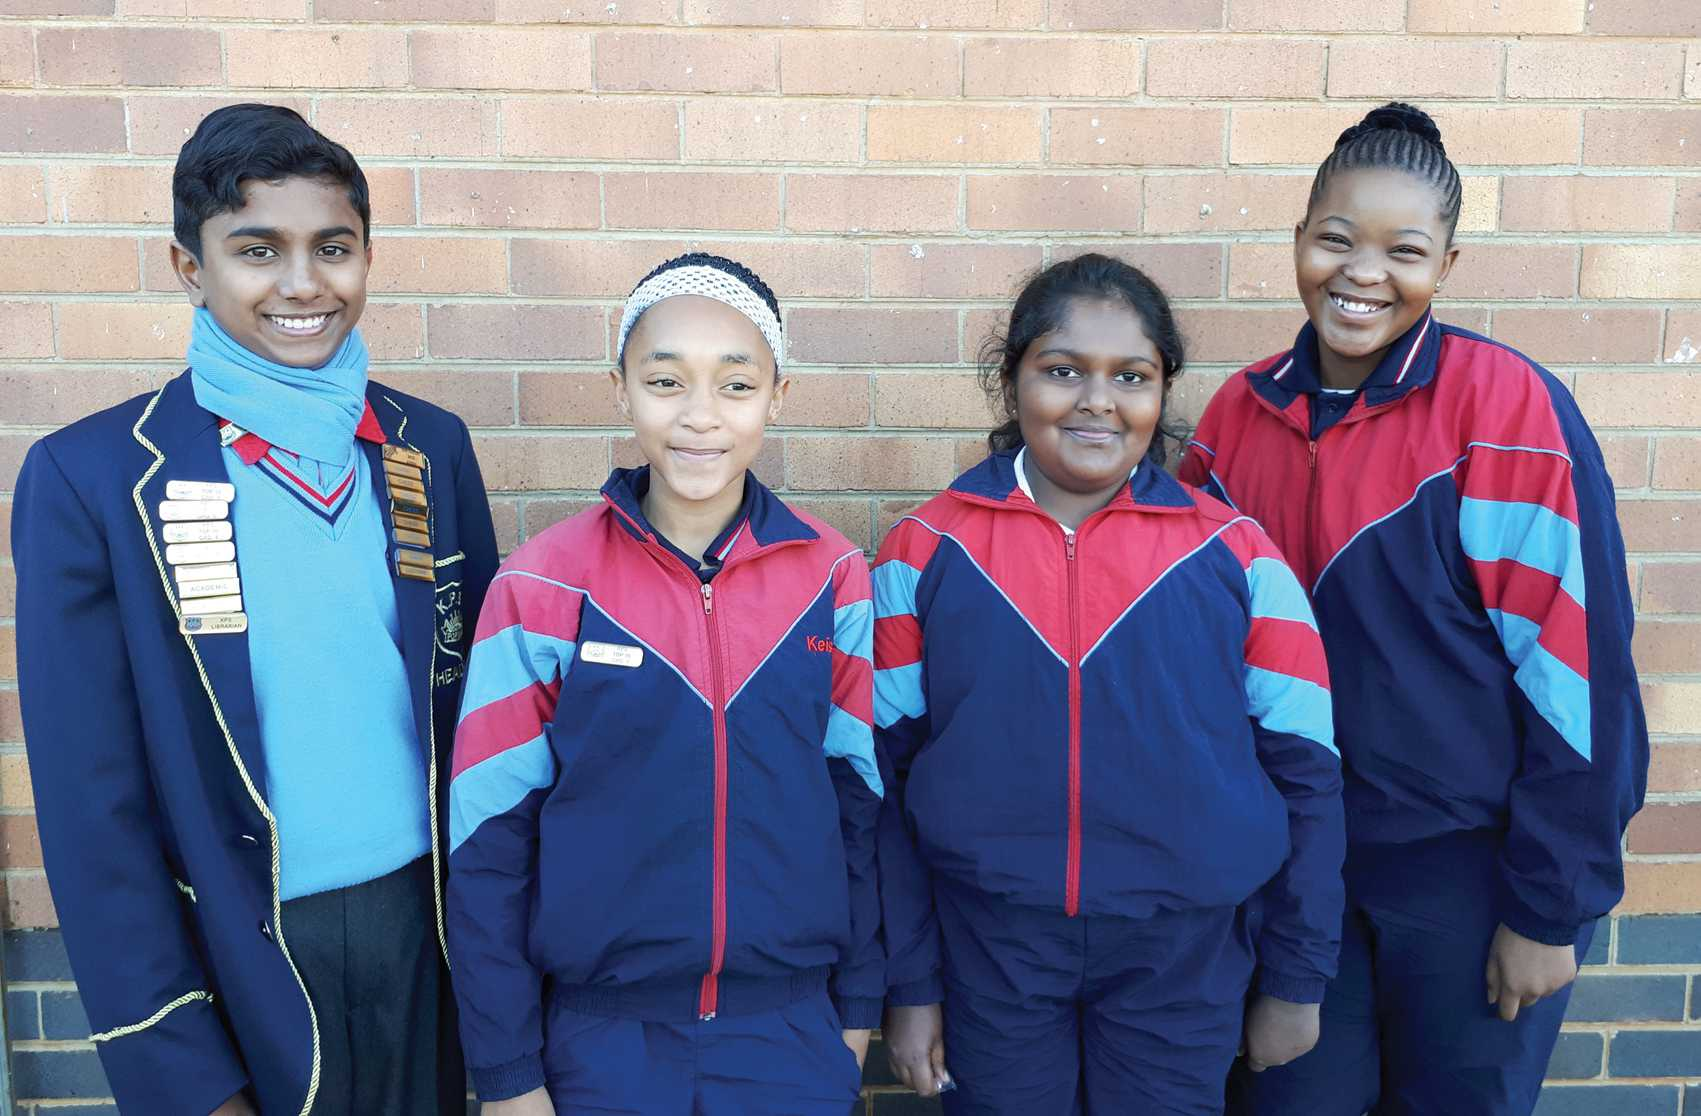 The following learners in KPS were the academic achievers in their respective grades for the second term: Asish Mathew (Gr 7), Keisha Brishmaer (Gr 5), Diya Abrham (Gr 4) and Molebogeng Mothibedi (Gr 6).